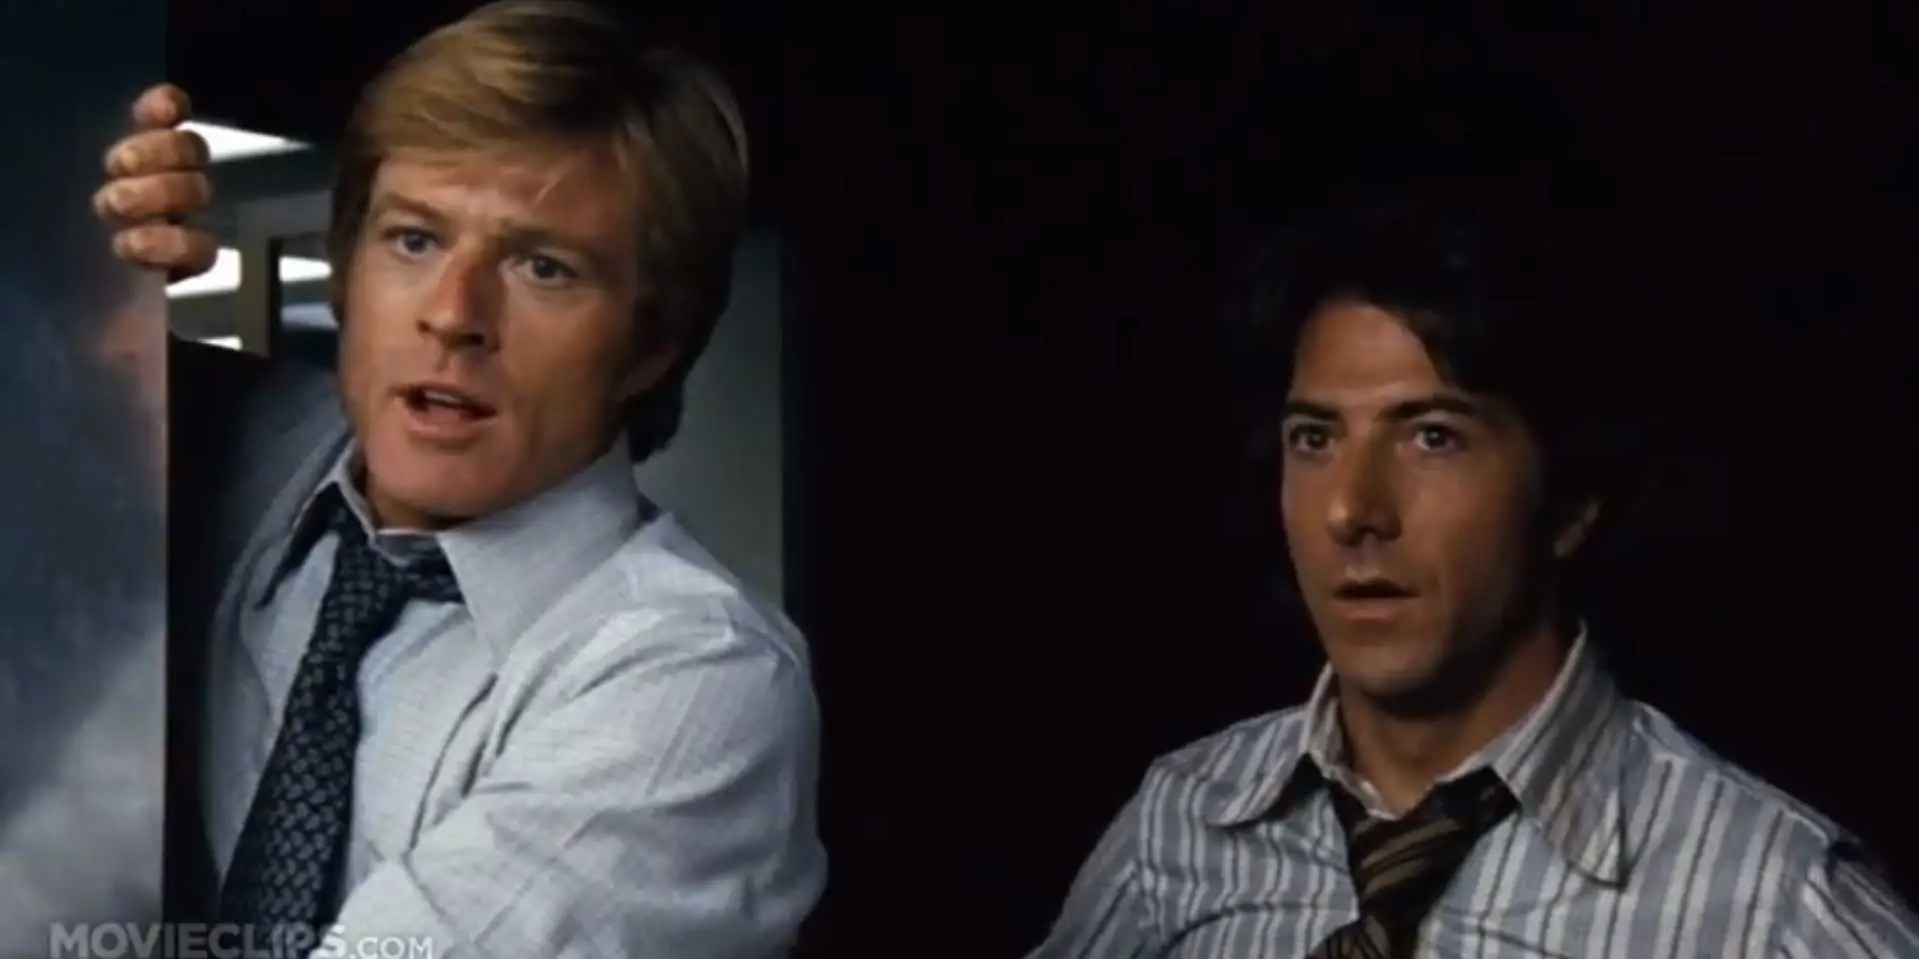 """All The President's Men"" (1976): Reporters Bob Woodward (Robert Redford) and Carl Bernstein (Dustin Hoffman) investigate the Nixon administration's Watergate scandal for The Washington Post."